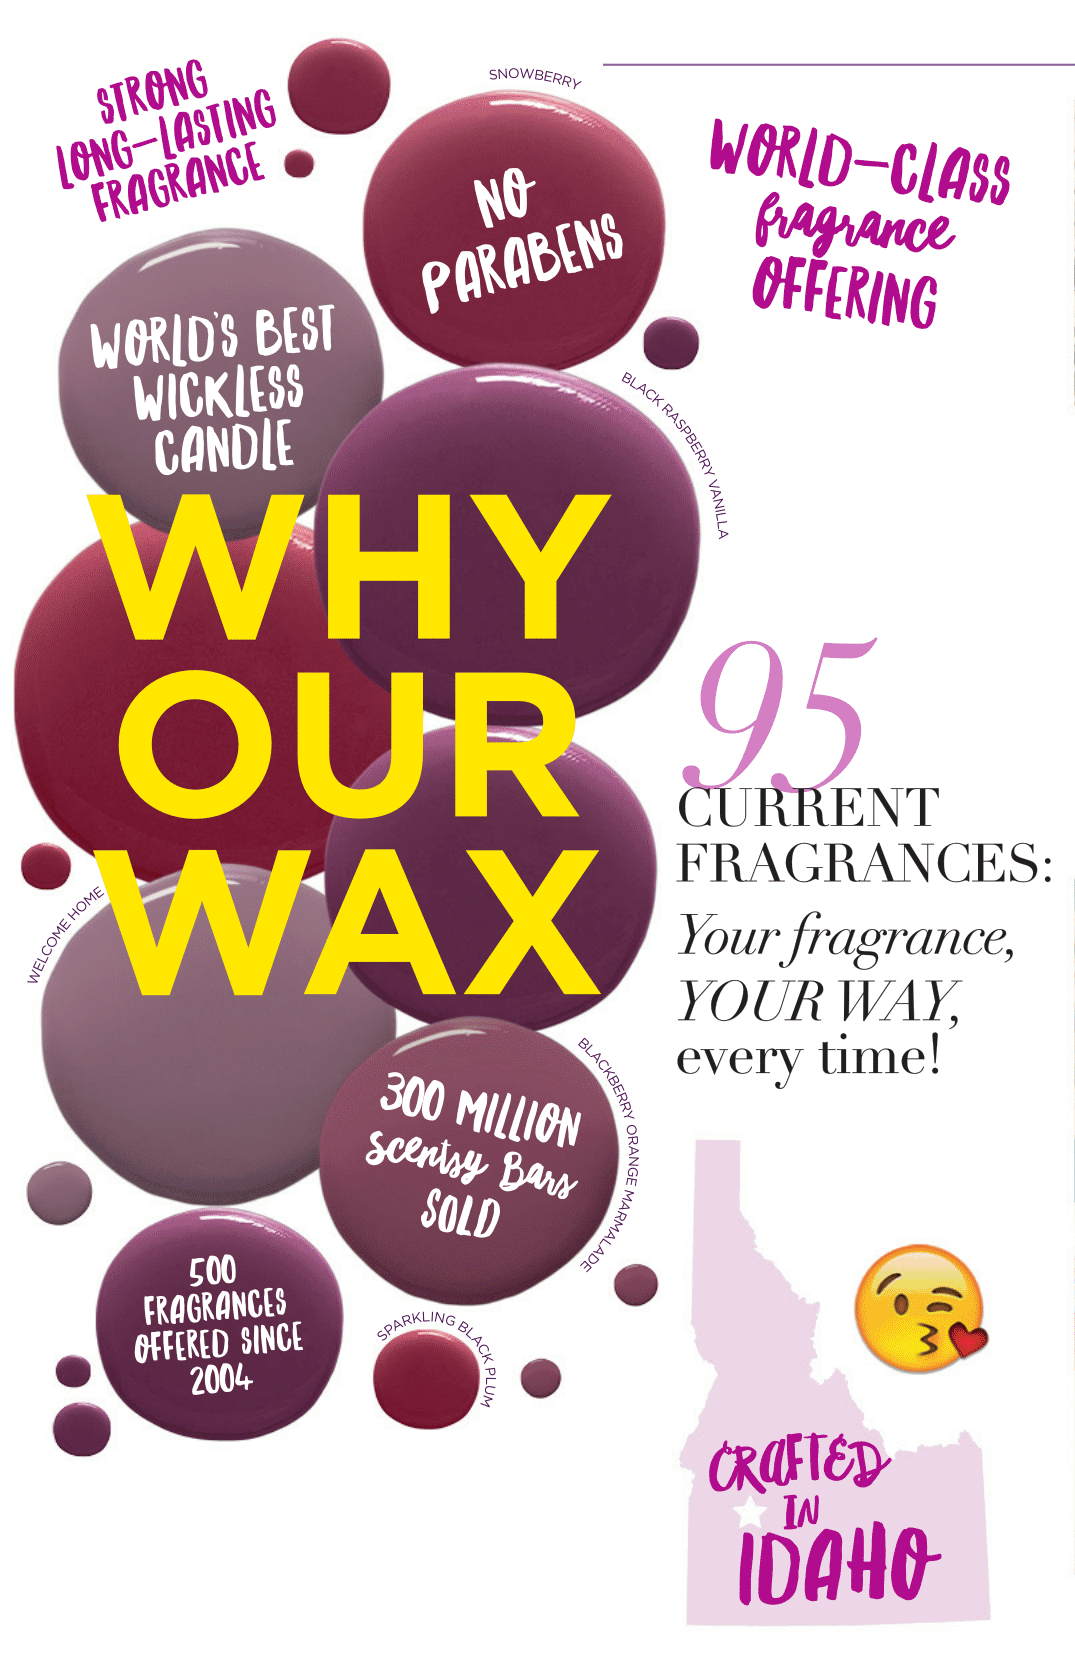 Why Our Wax? - Scentsy